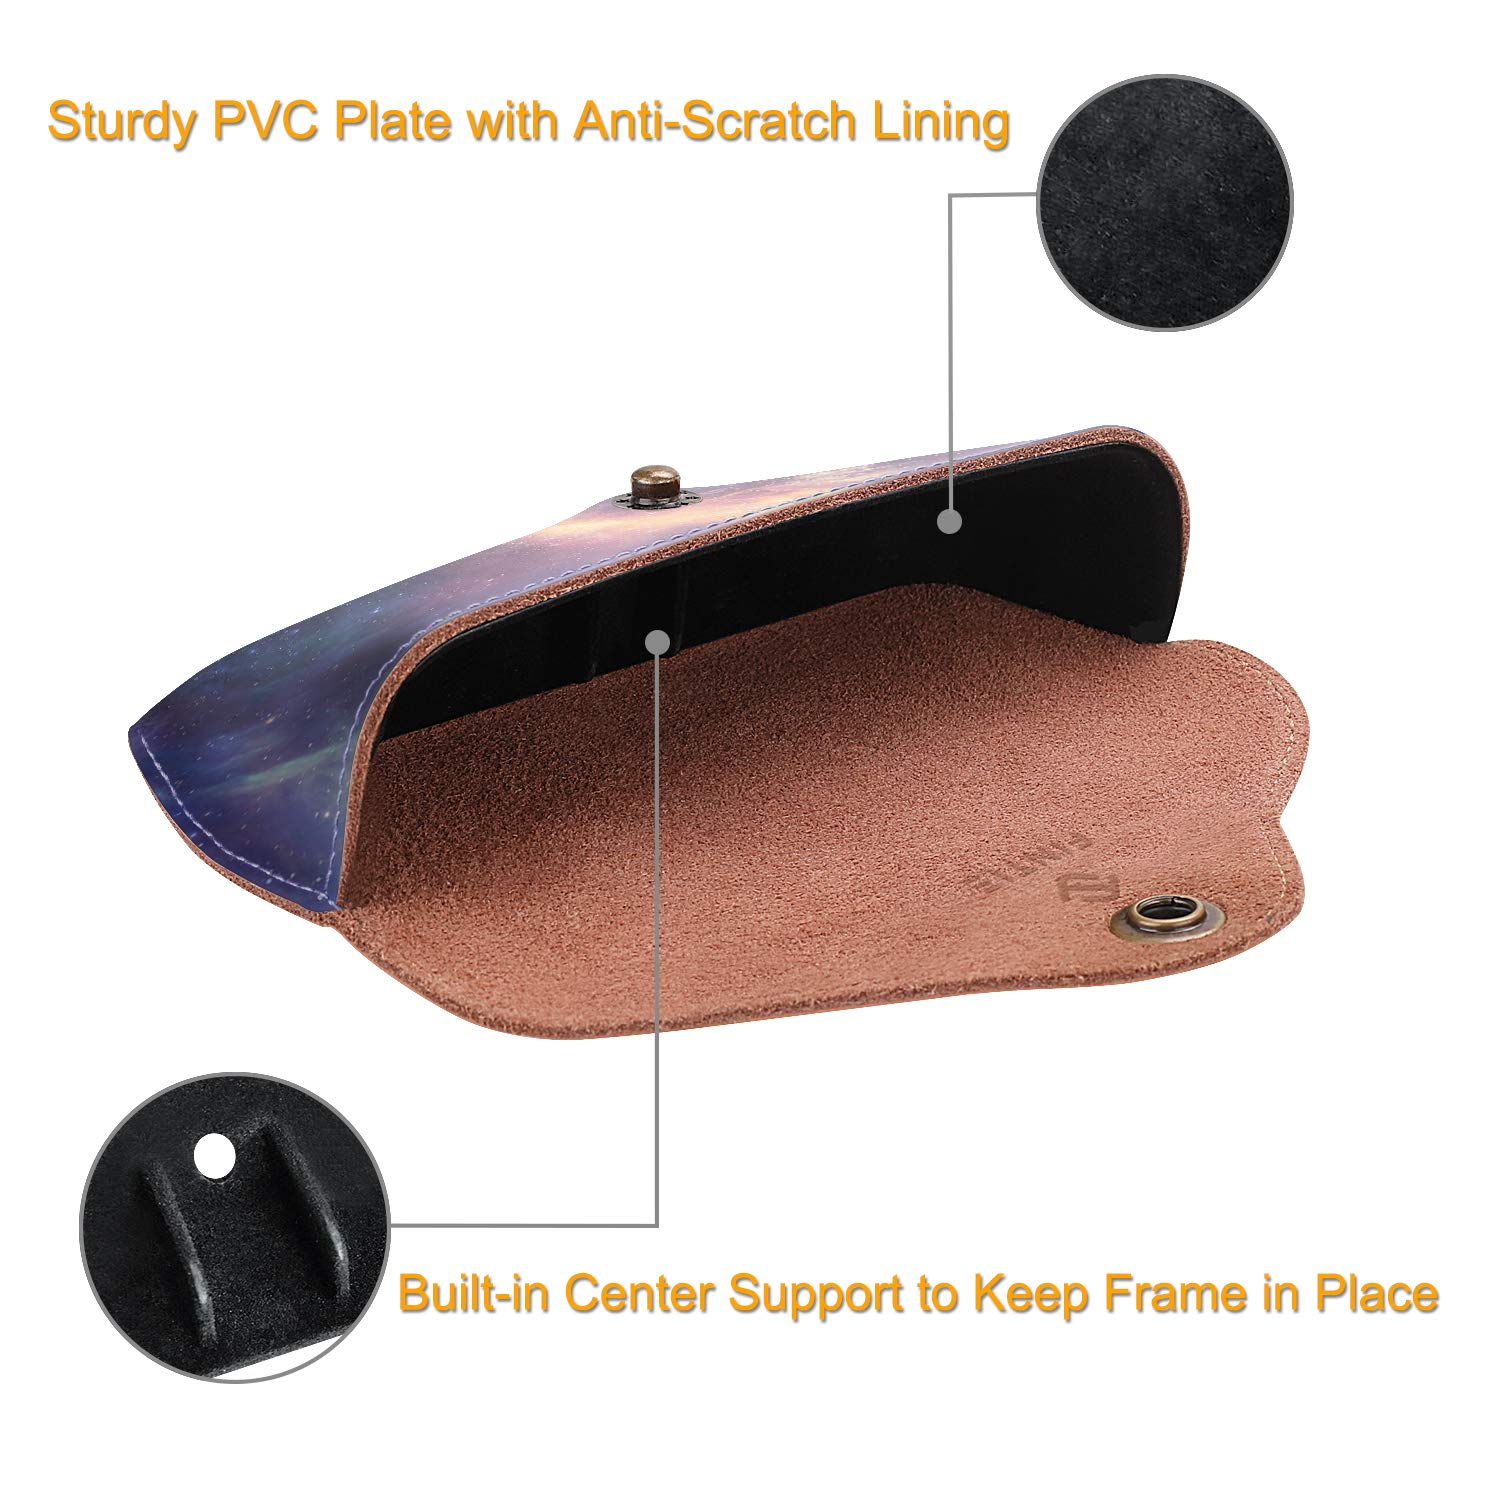 Fintie Portable Sunglasses Case, Semi-Hard Vegan Leather Glasses Carrying Case Eyewear Pouch with Snap Button Closure by Fintie (Image #5)